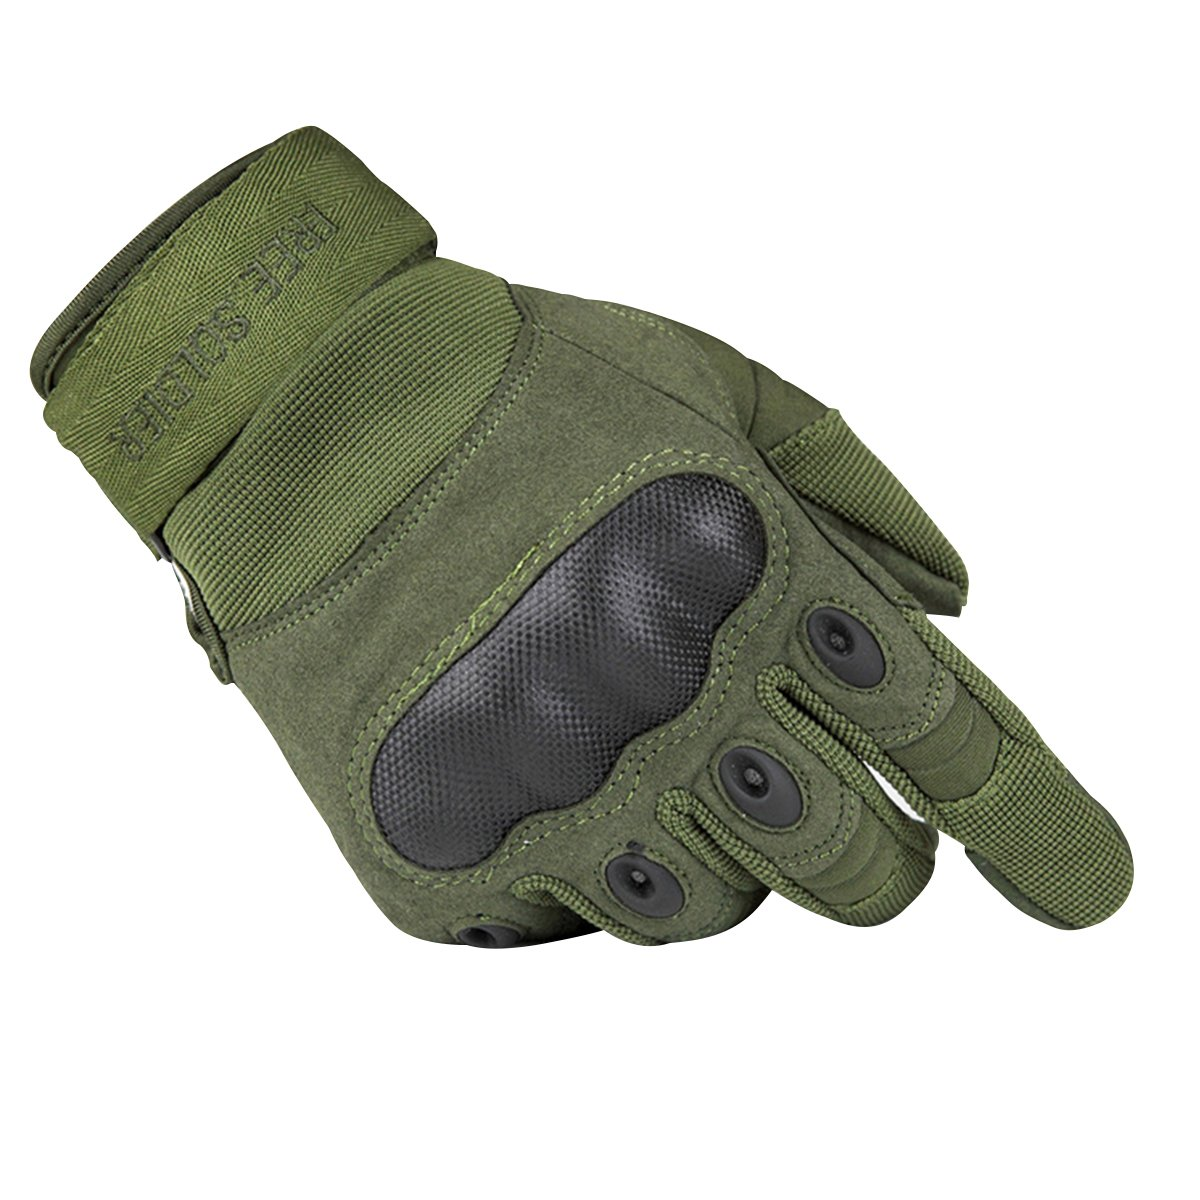 FREE SOLDIER Tactical Gloves for Men Military Hard Knuckle Full Finger Gloves Armor Gloves(Army Green XX-Large)